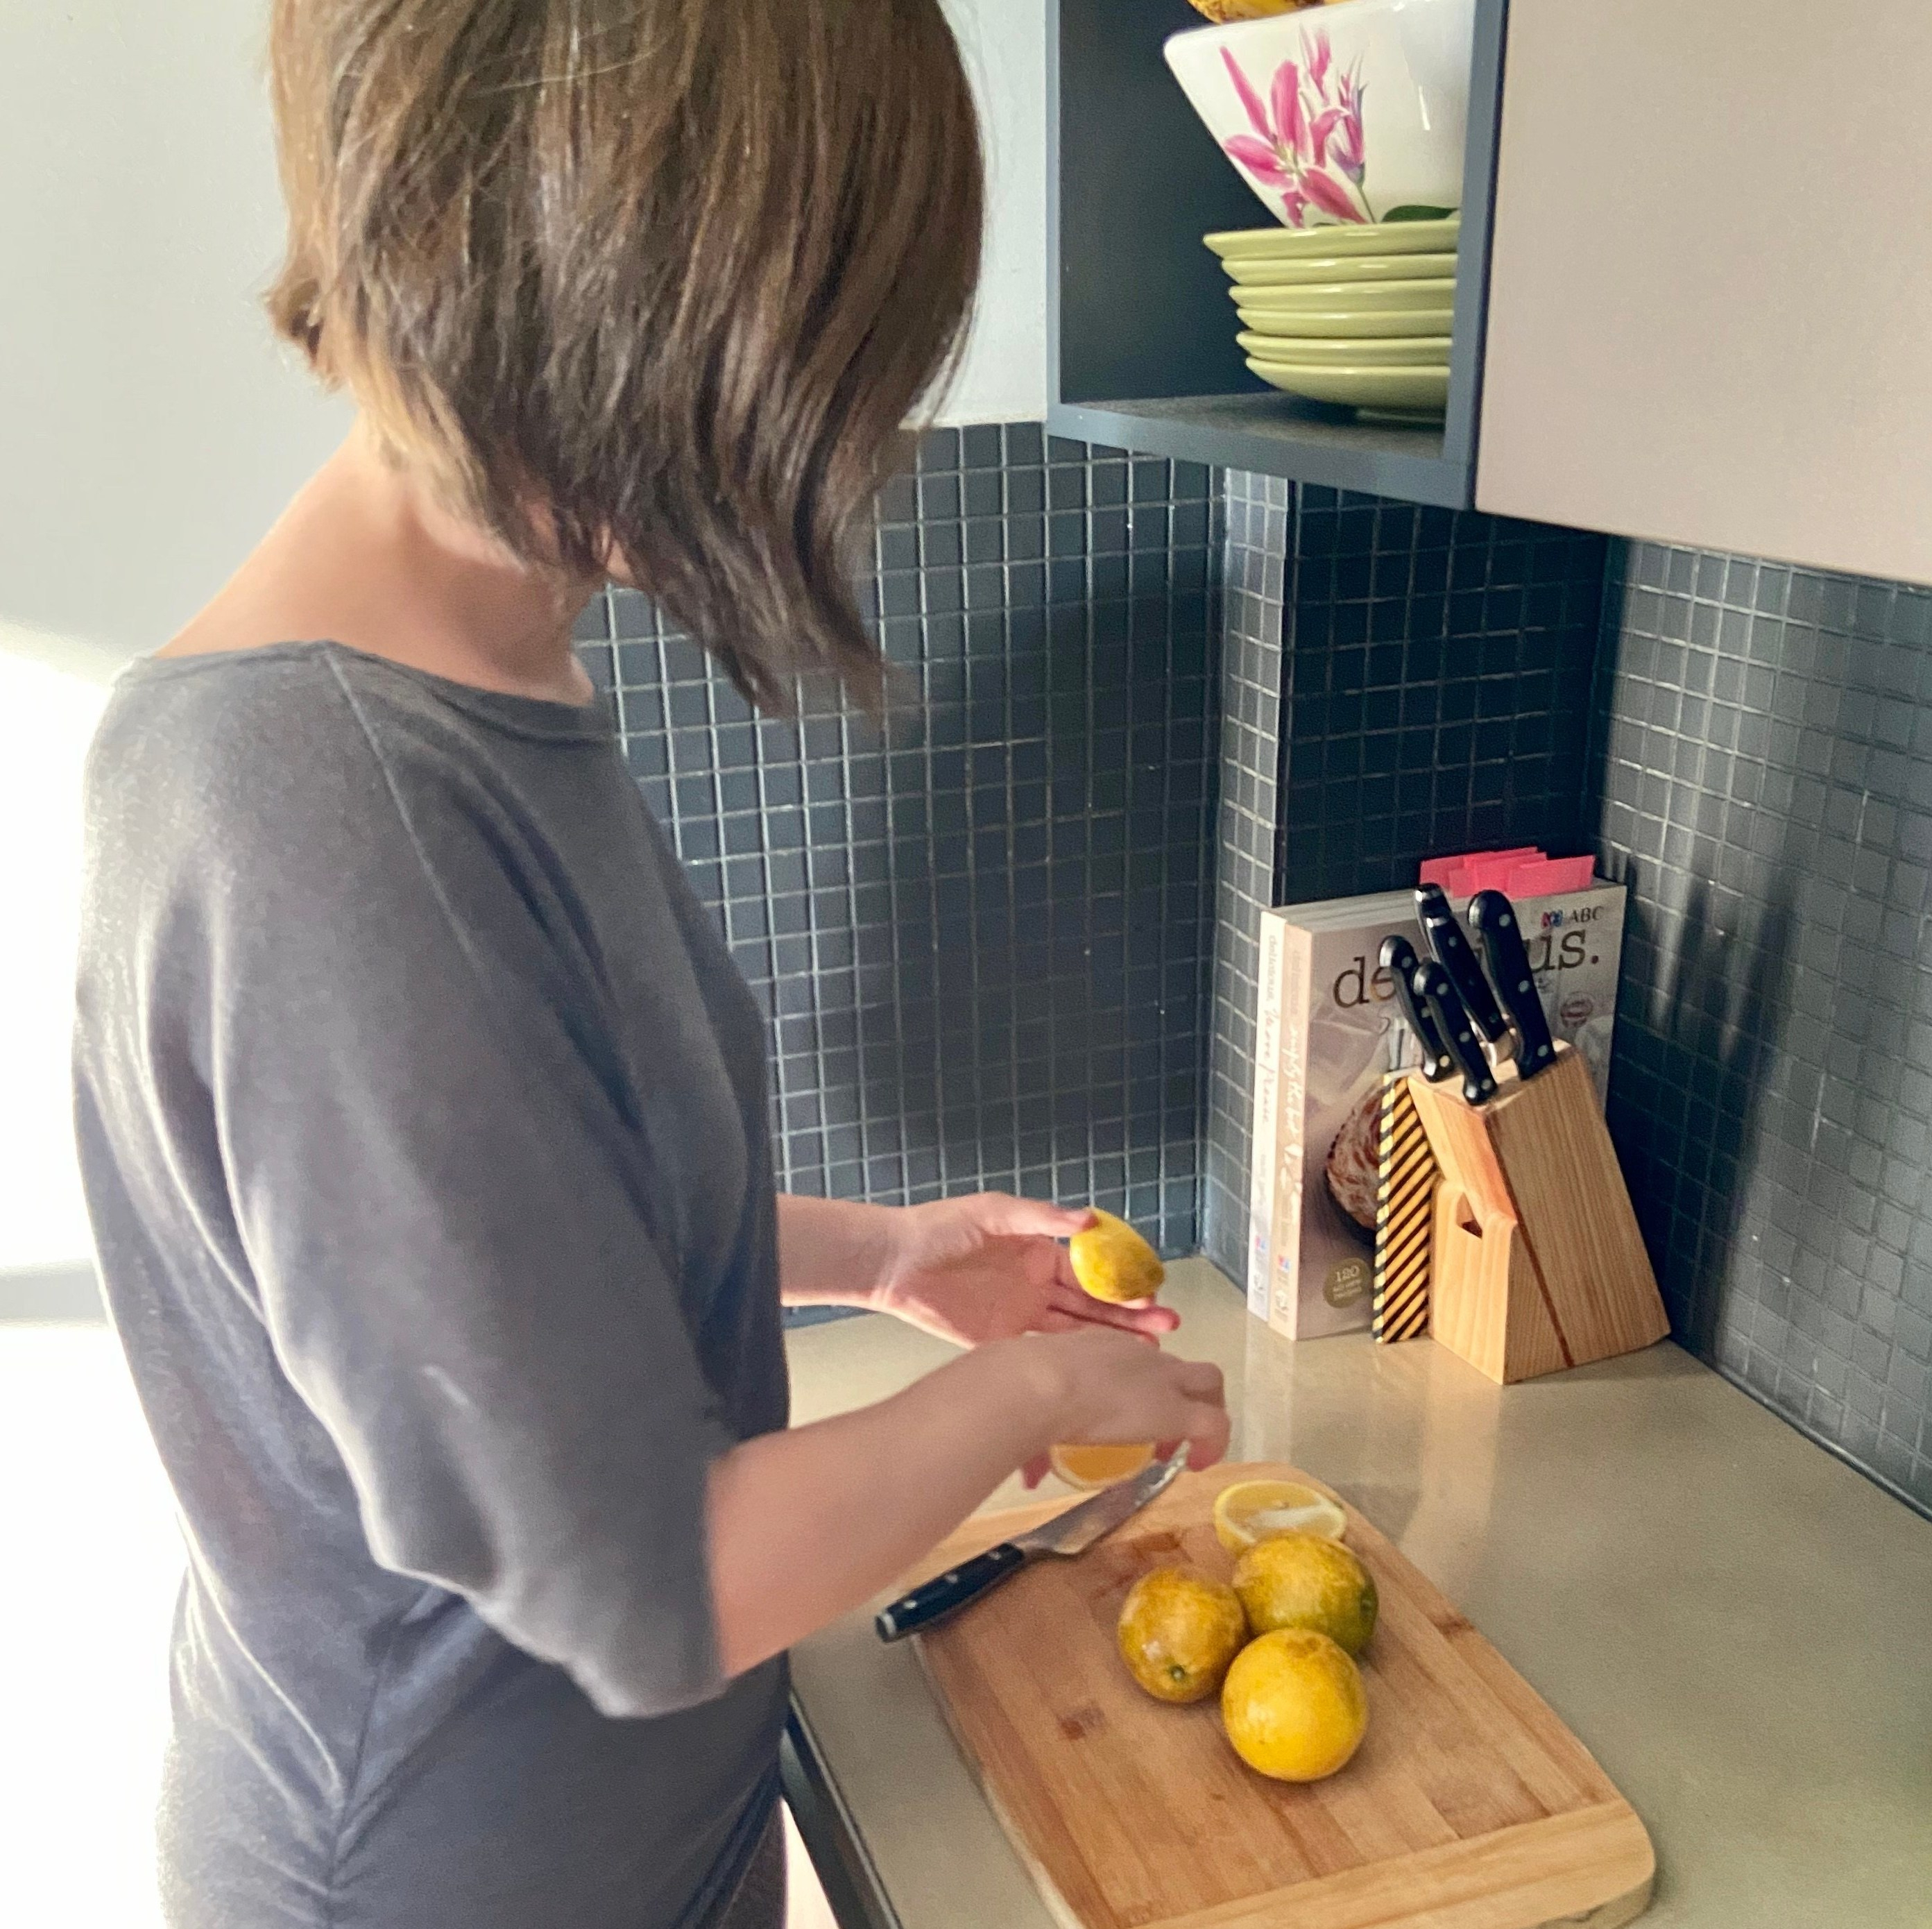 Woman cuts lemonades in kitchen